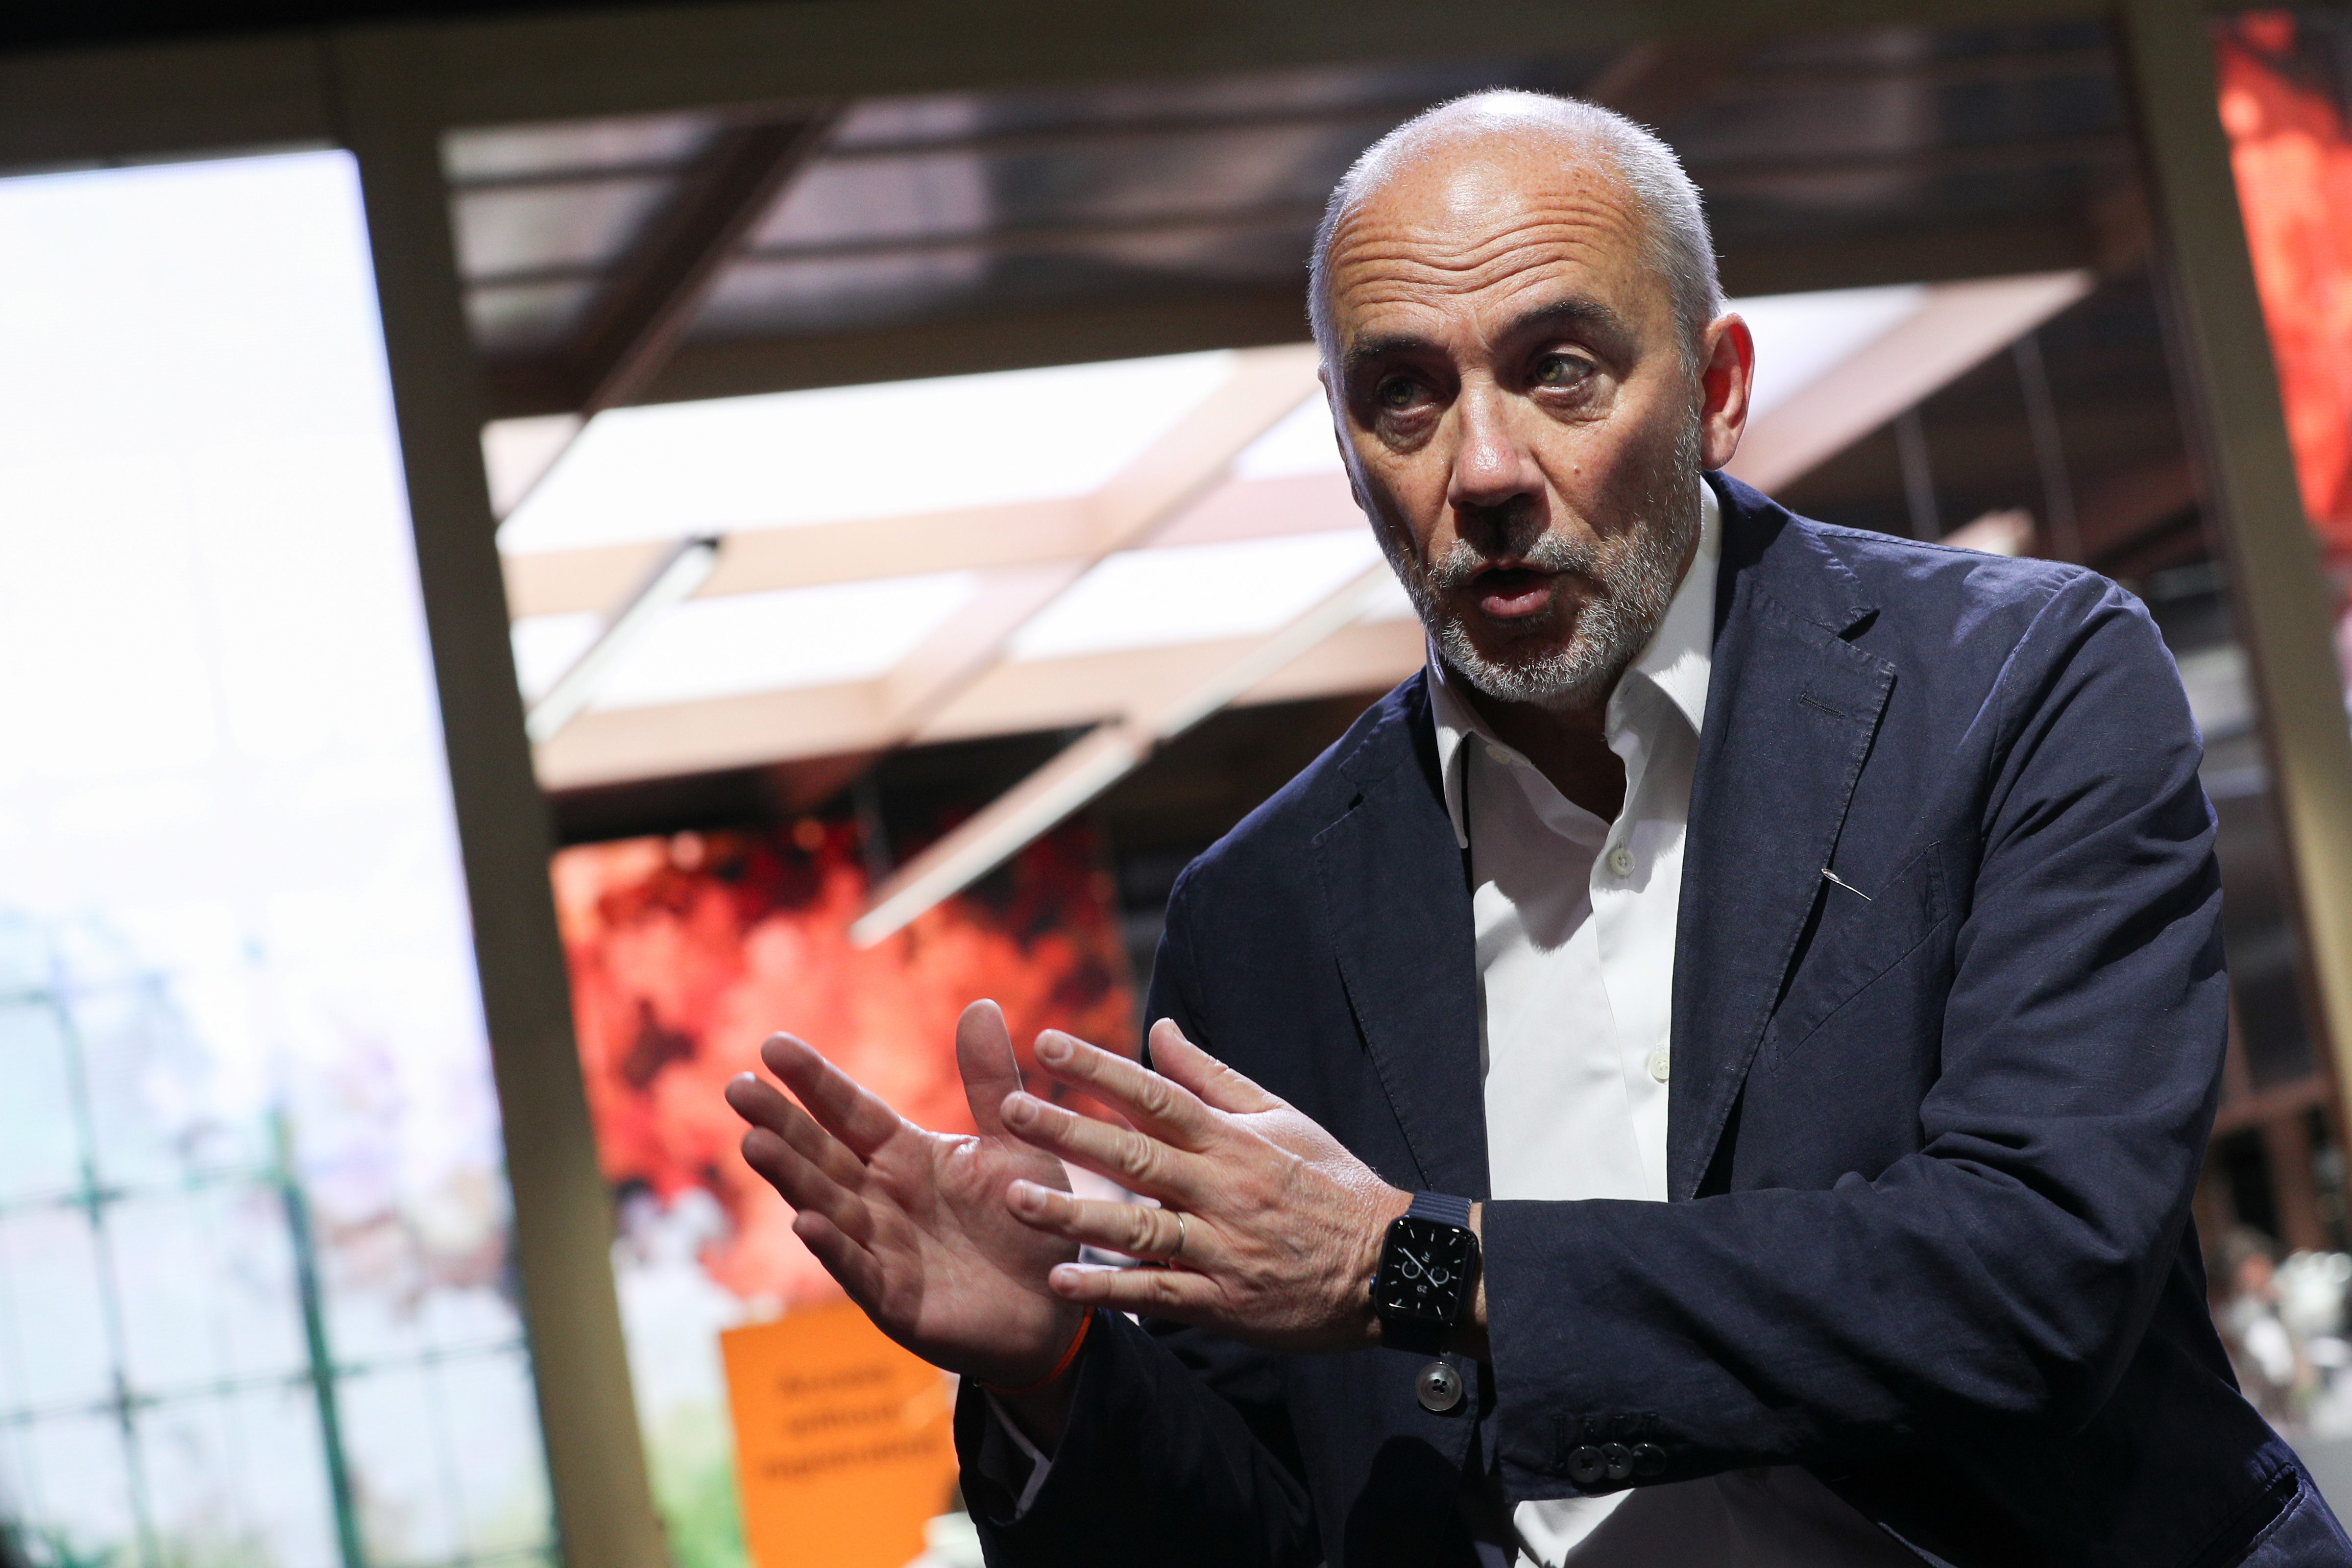 Chairman & CEO of Orange Stephane Richard speaks during an interview at the Mobile World Congress (MWC) in Barcelona, Spain, June 29, 2021. REUTERS/Albert Gea